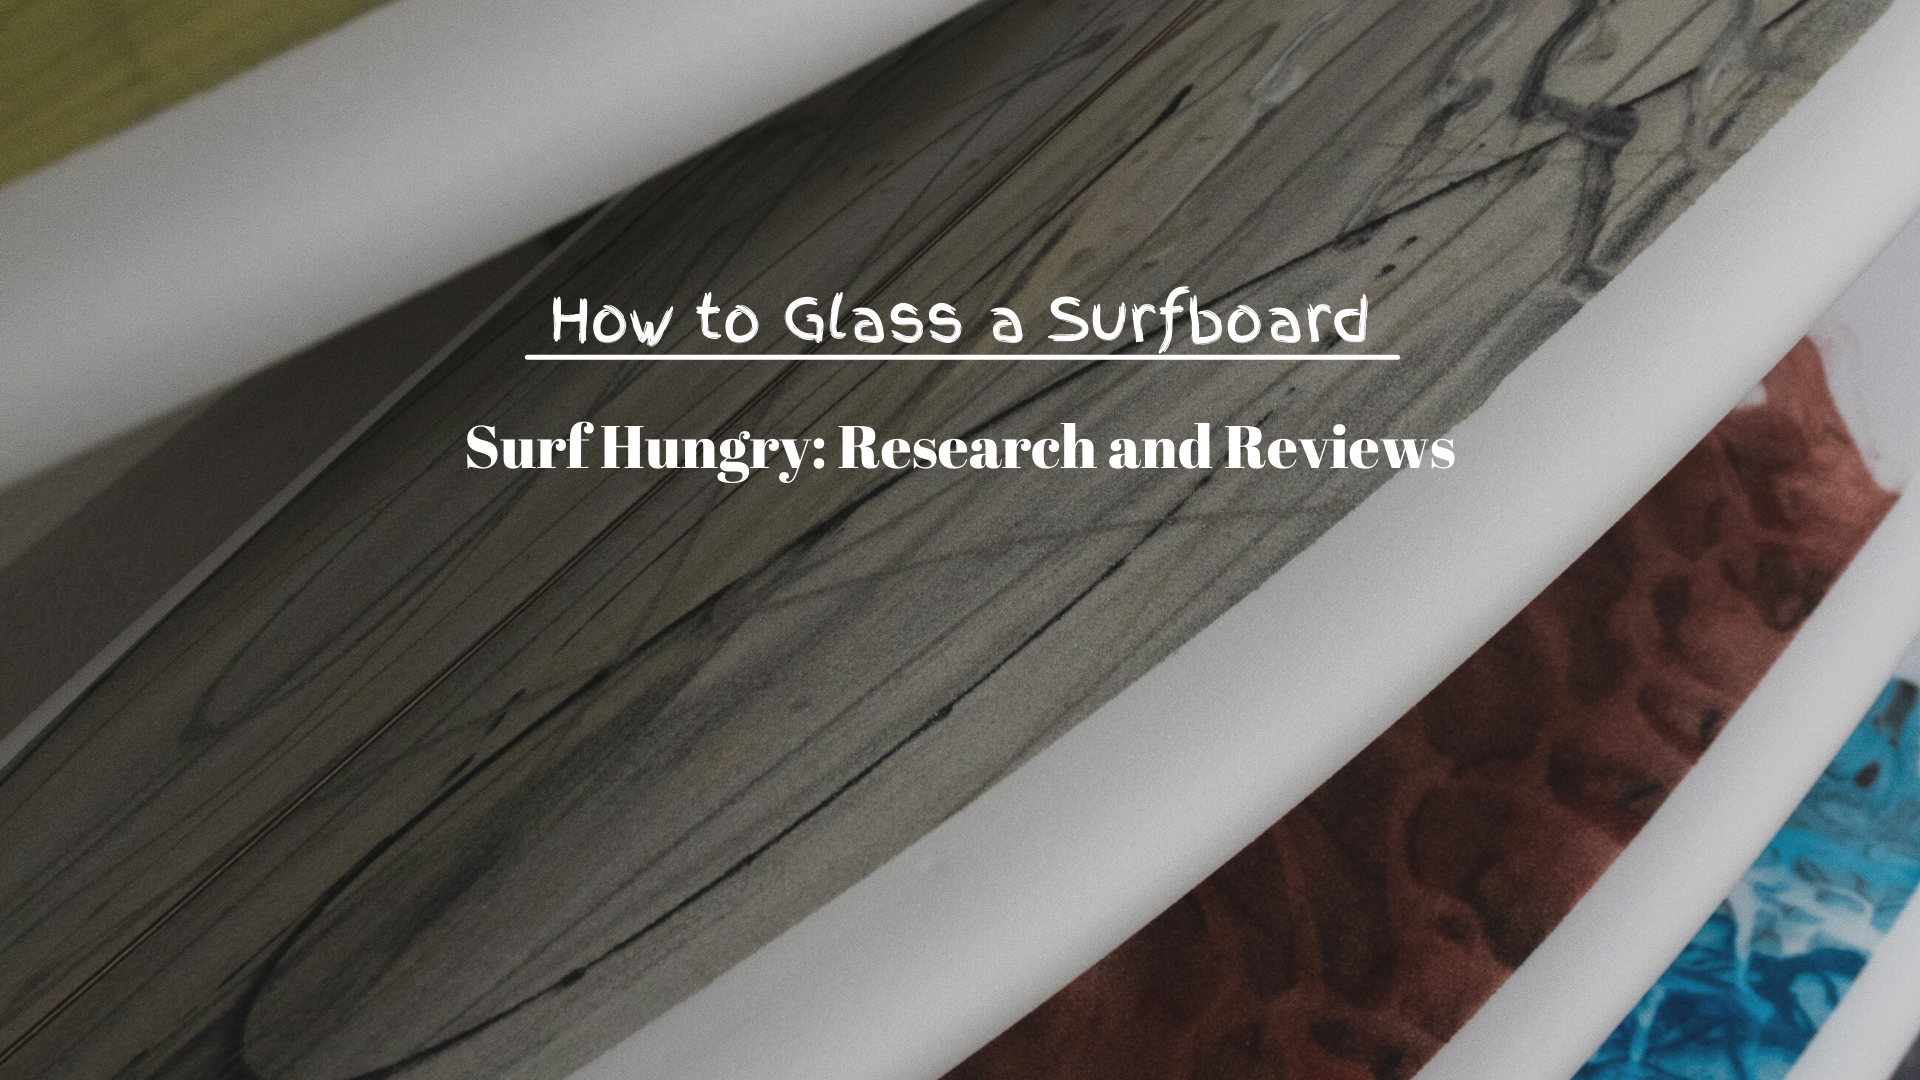 How to Glass a Surfboard